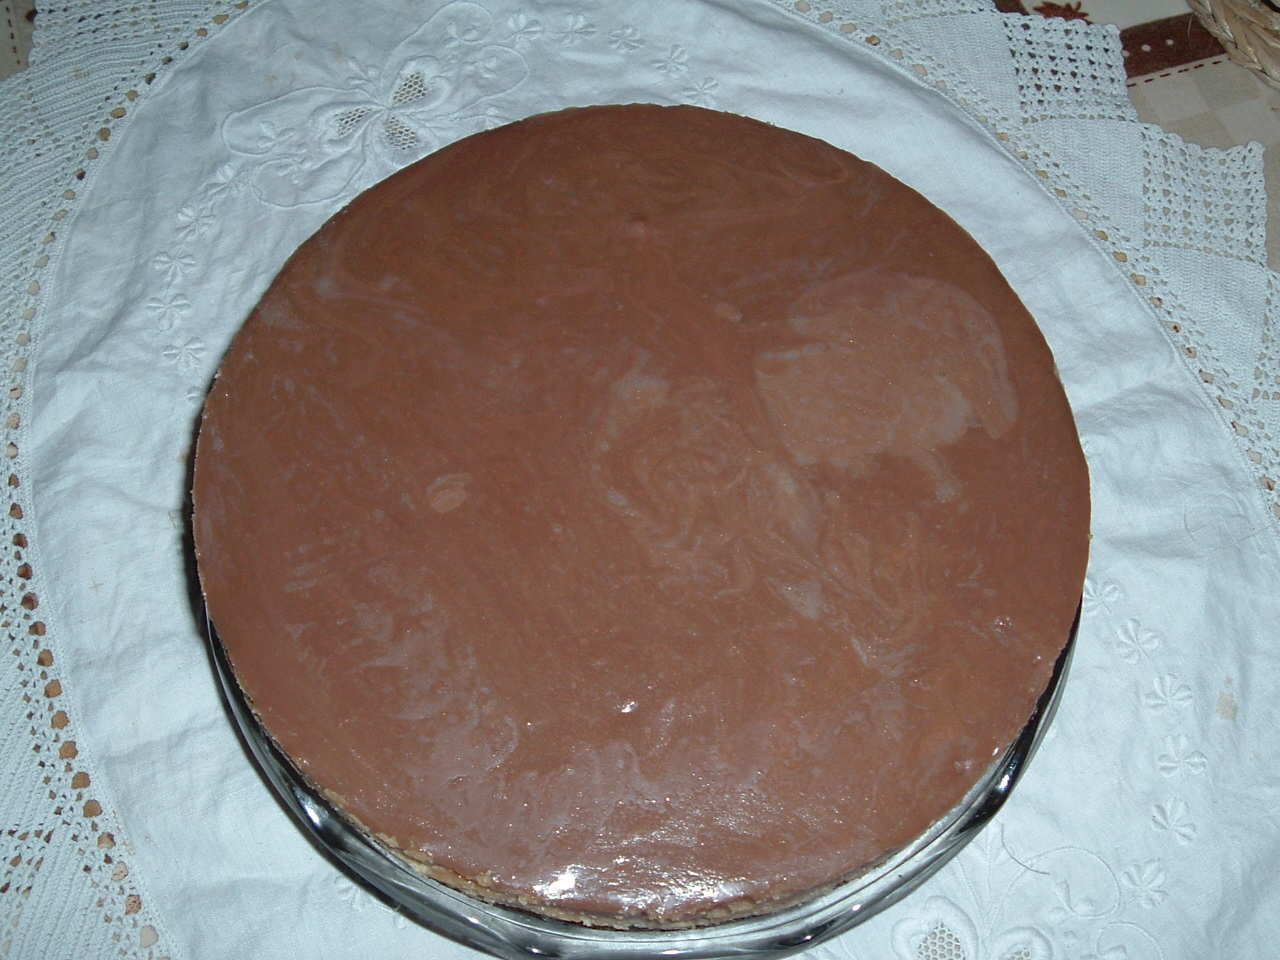 Peanut and chocolate tart